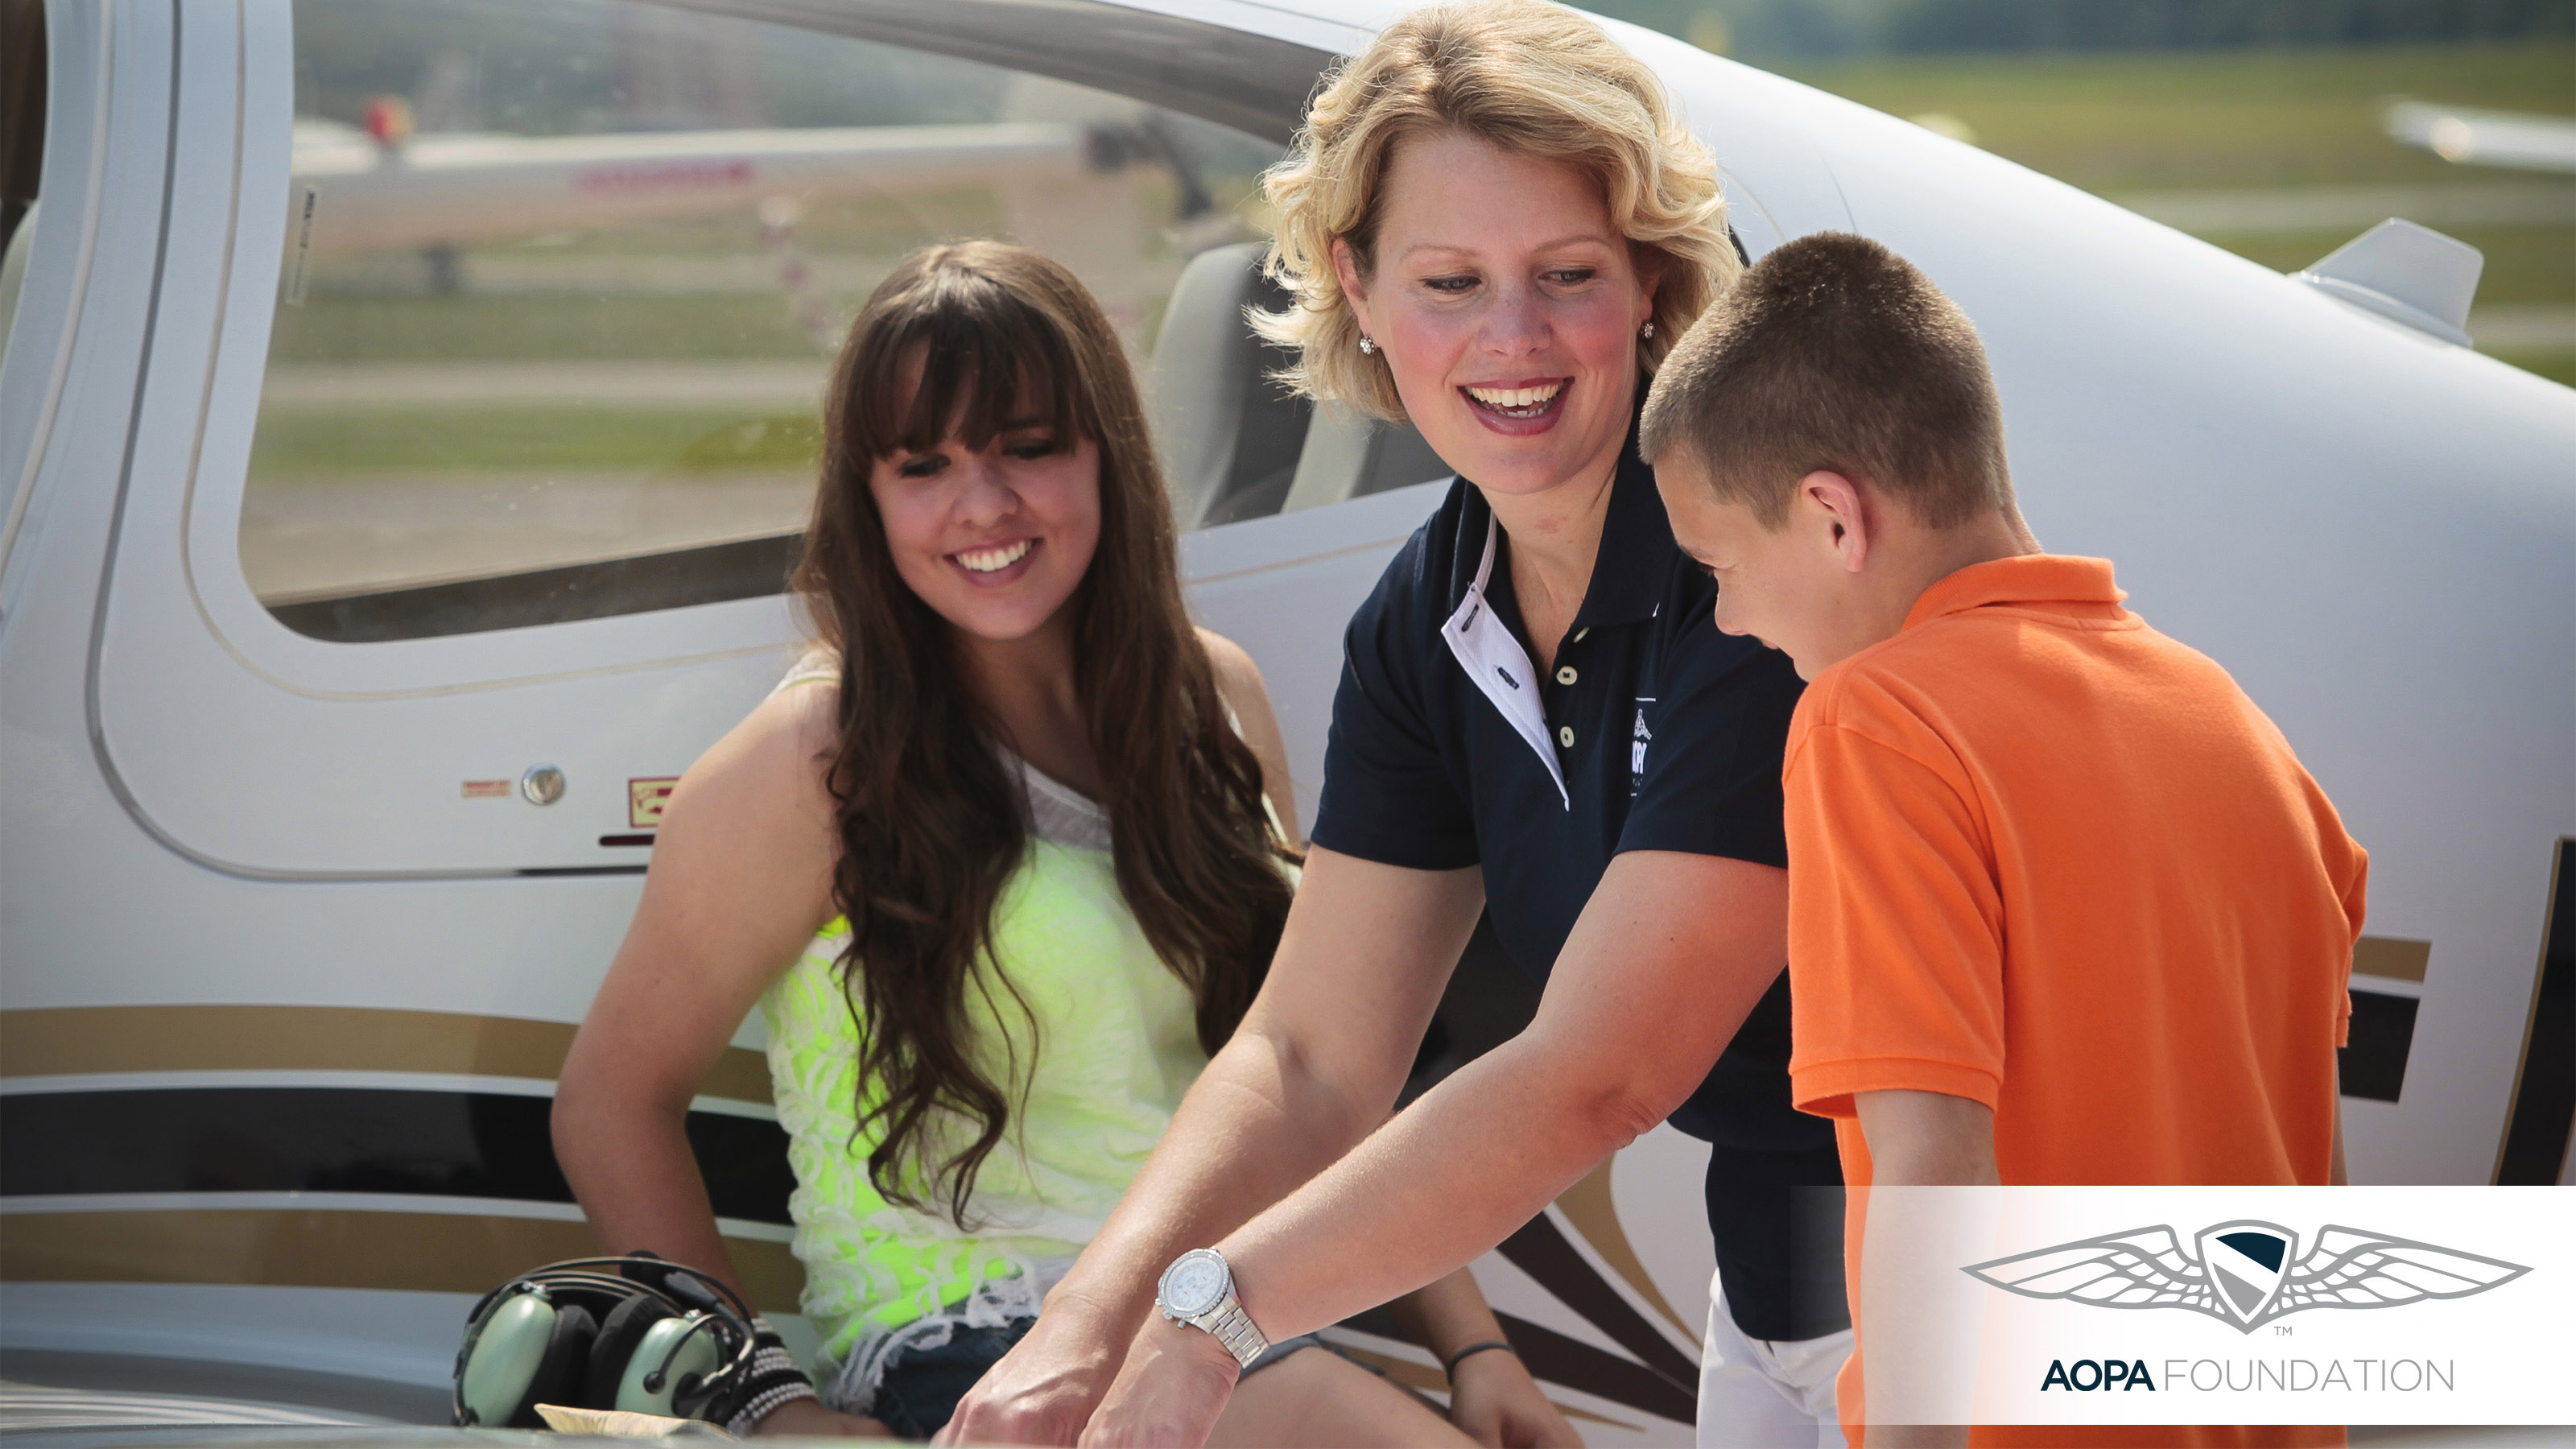 All donations made to the You Can Fly Challenge before August 31 will be matched by the Ray Foundation. Now is the chance to make your donations soar! AOPA file photo.